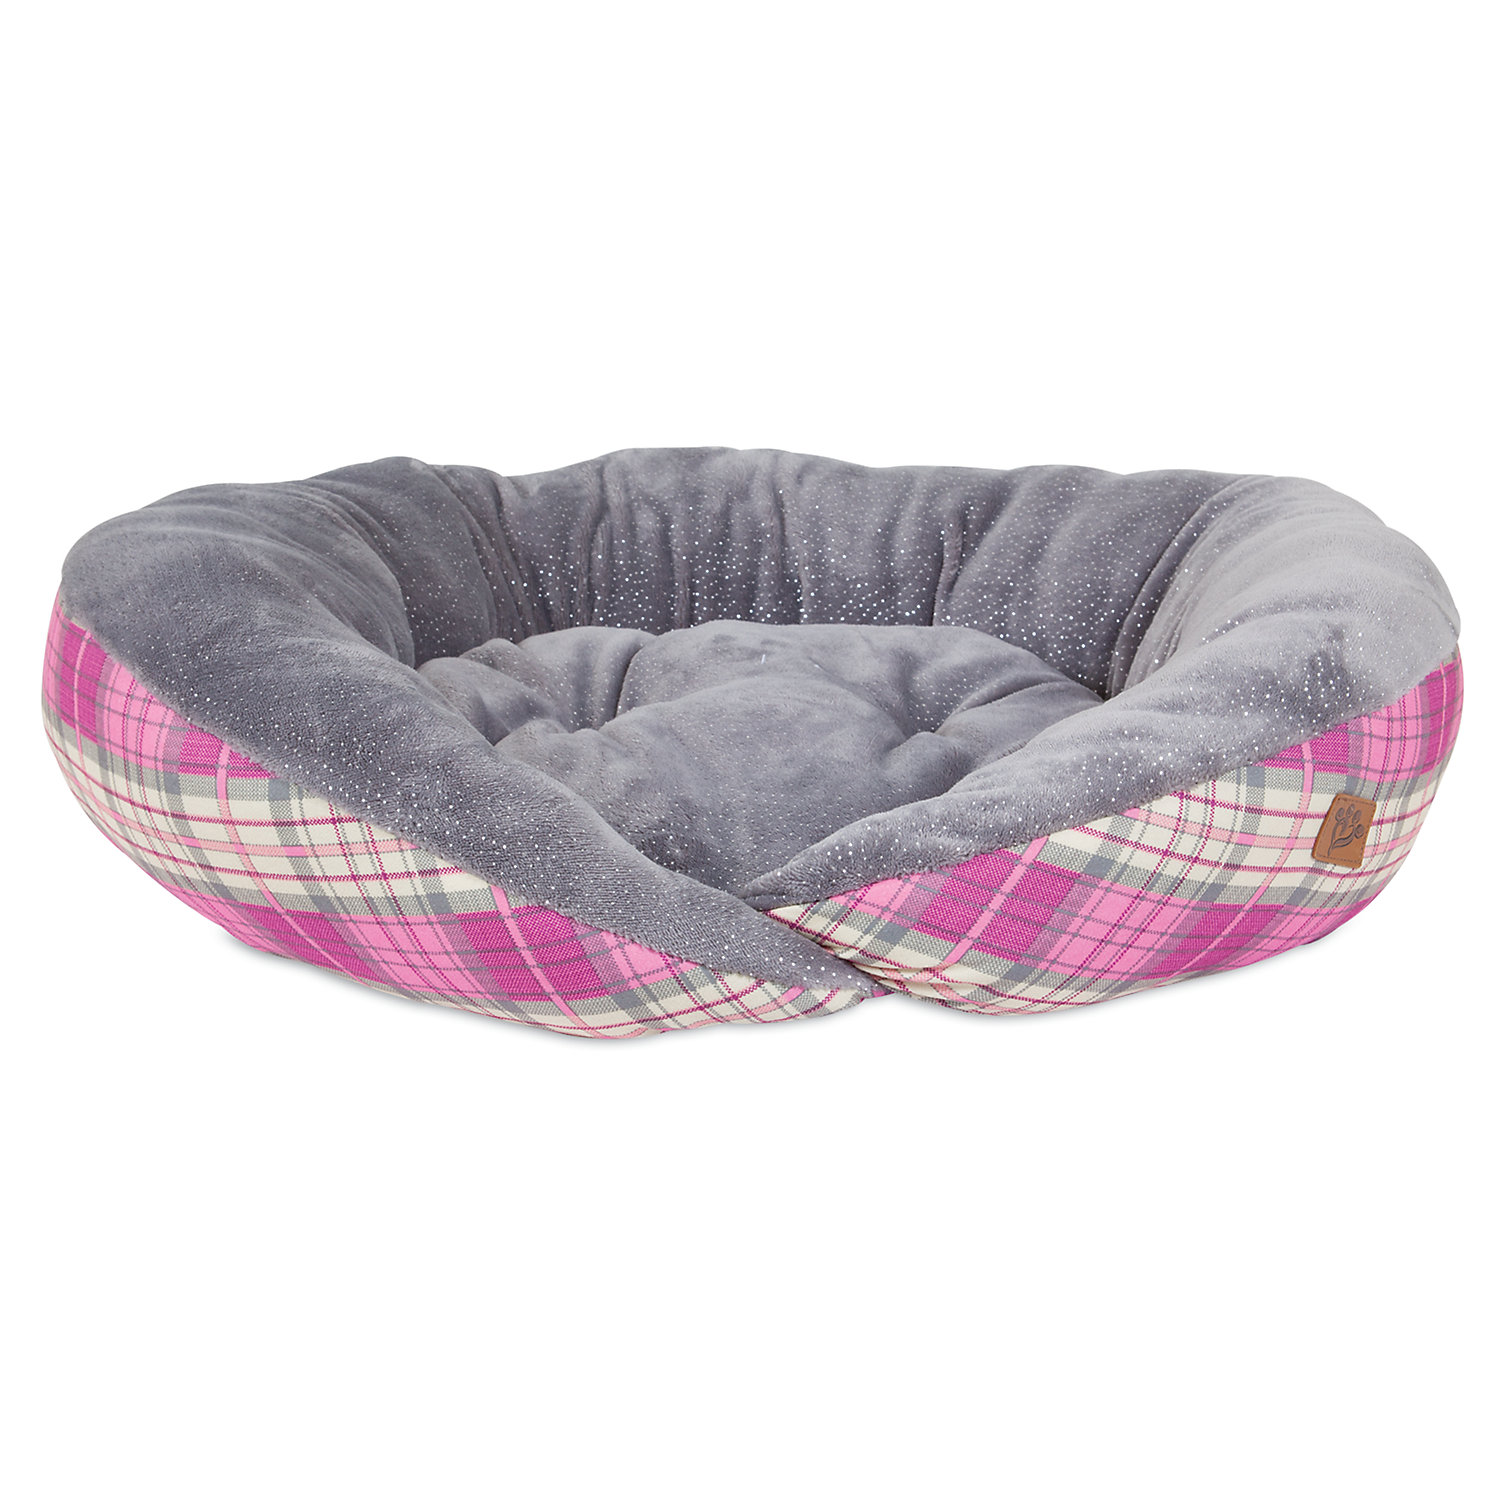 Mutt Nation Fueled By Miranda Lambert Plush Lounger Dog Bed In Pink Plaid 26 L X 23 W Small